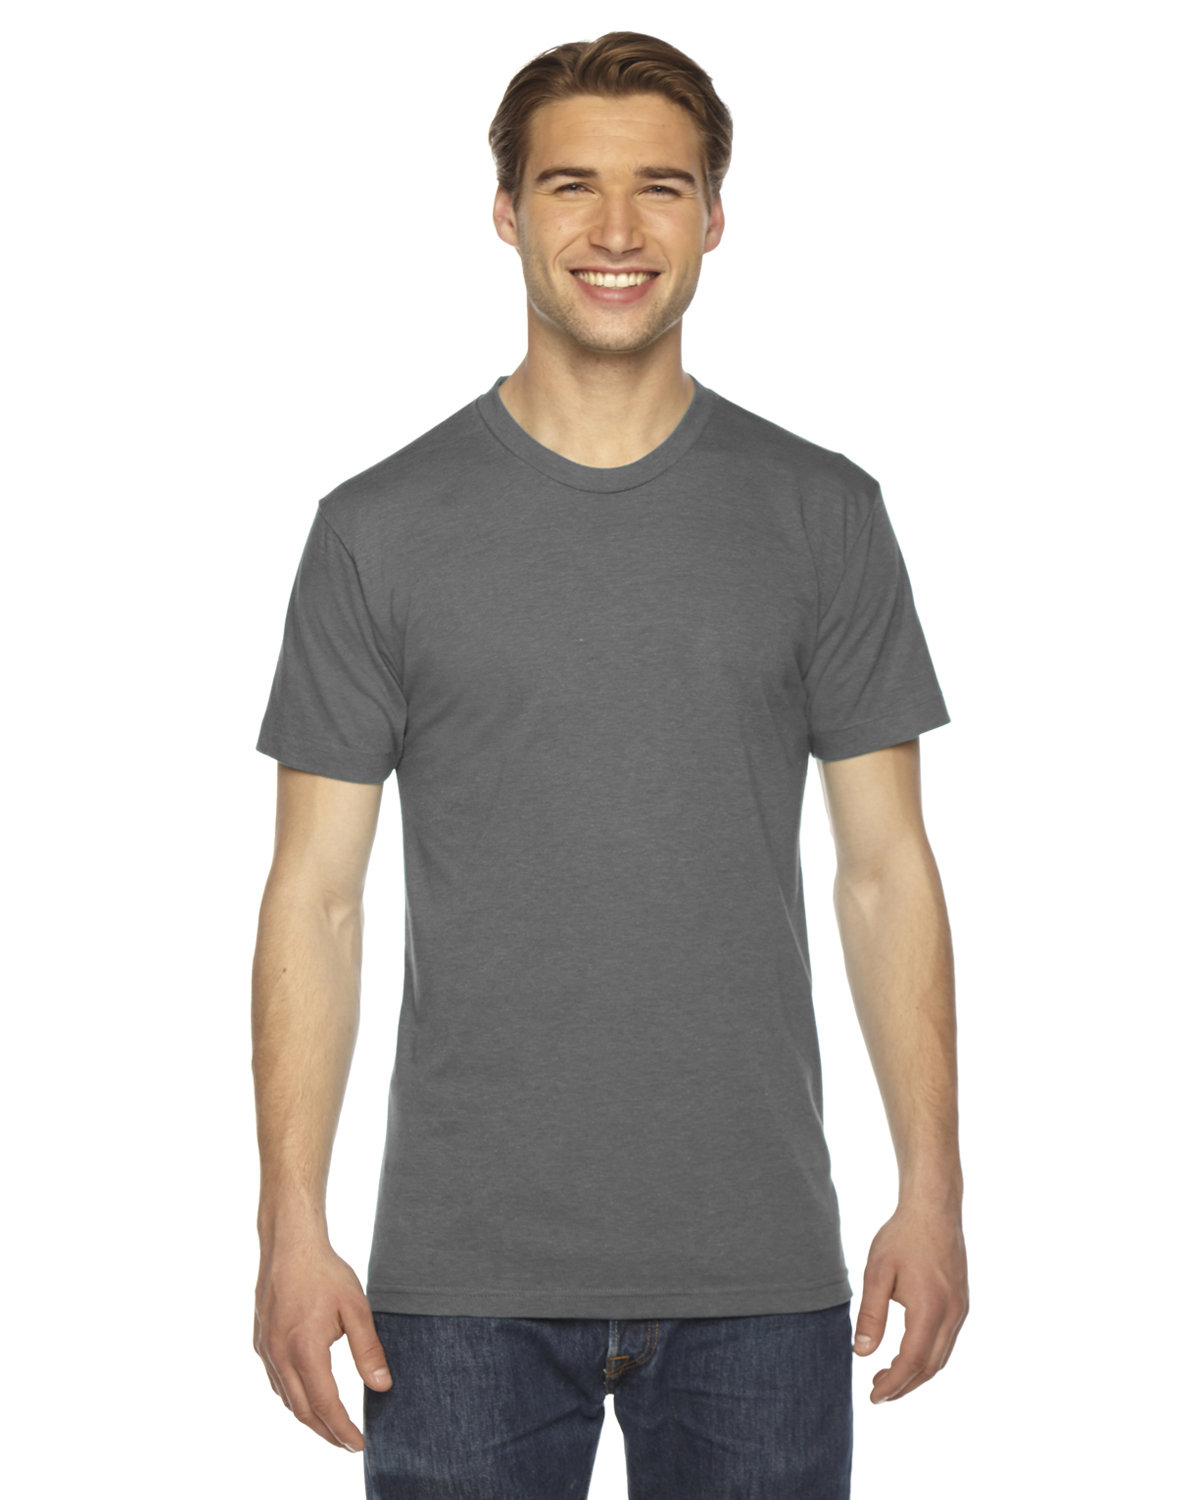 American Apparel Unisex Triblend Short-Sleeve Track T-Shirt ATHLETIC GREY